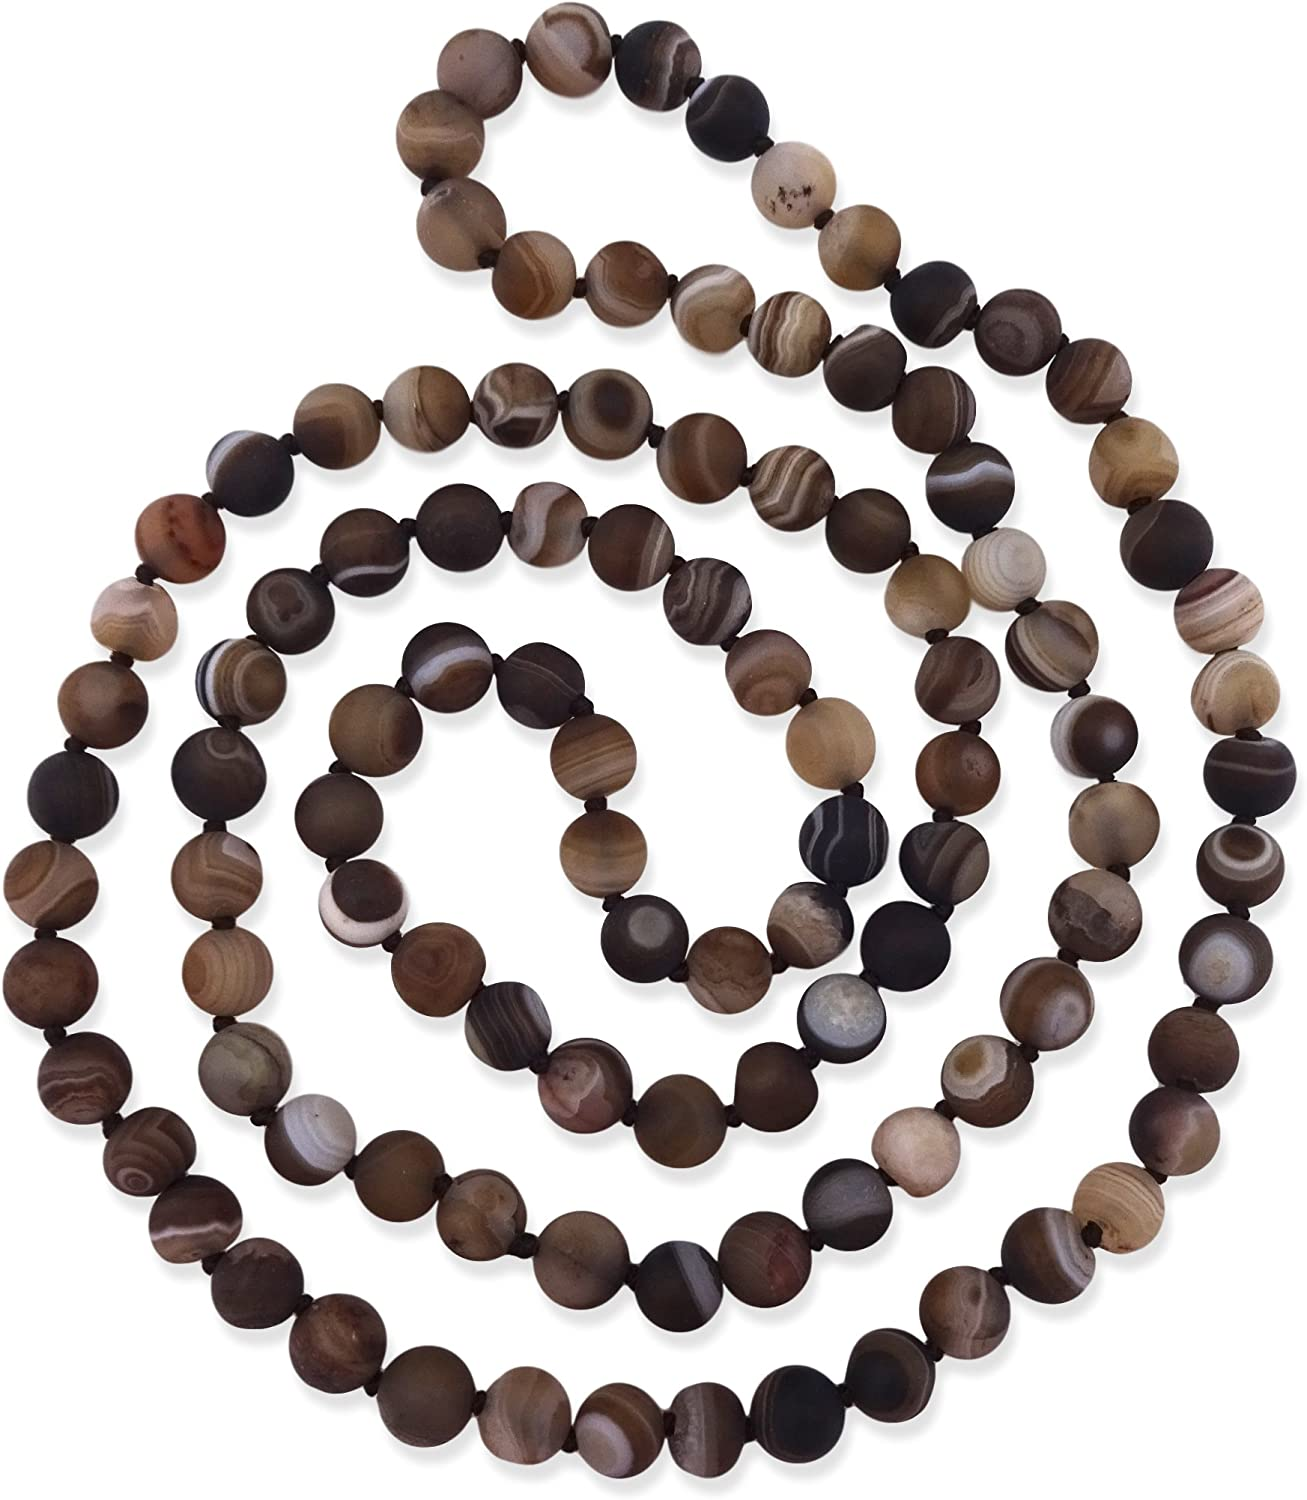 MGR MY GEMS ROCK! 36 Inch 7-8MM Matte Finnish Genuine Semi-Precious Stone Endless Infinity Long Beaded Strand Necklace.